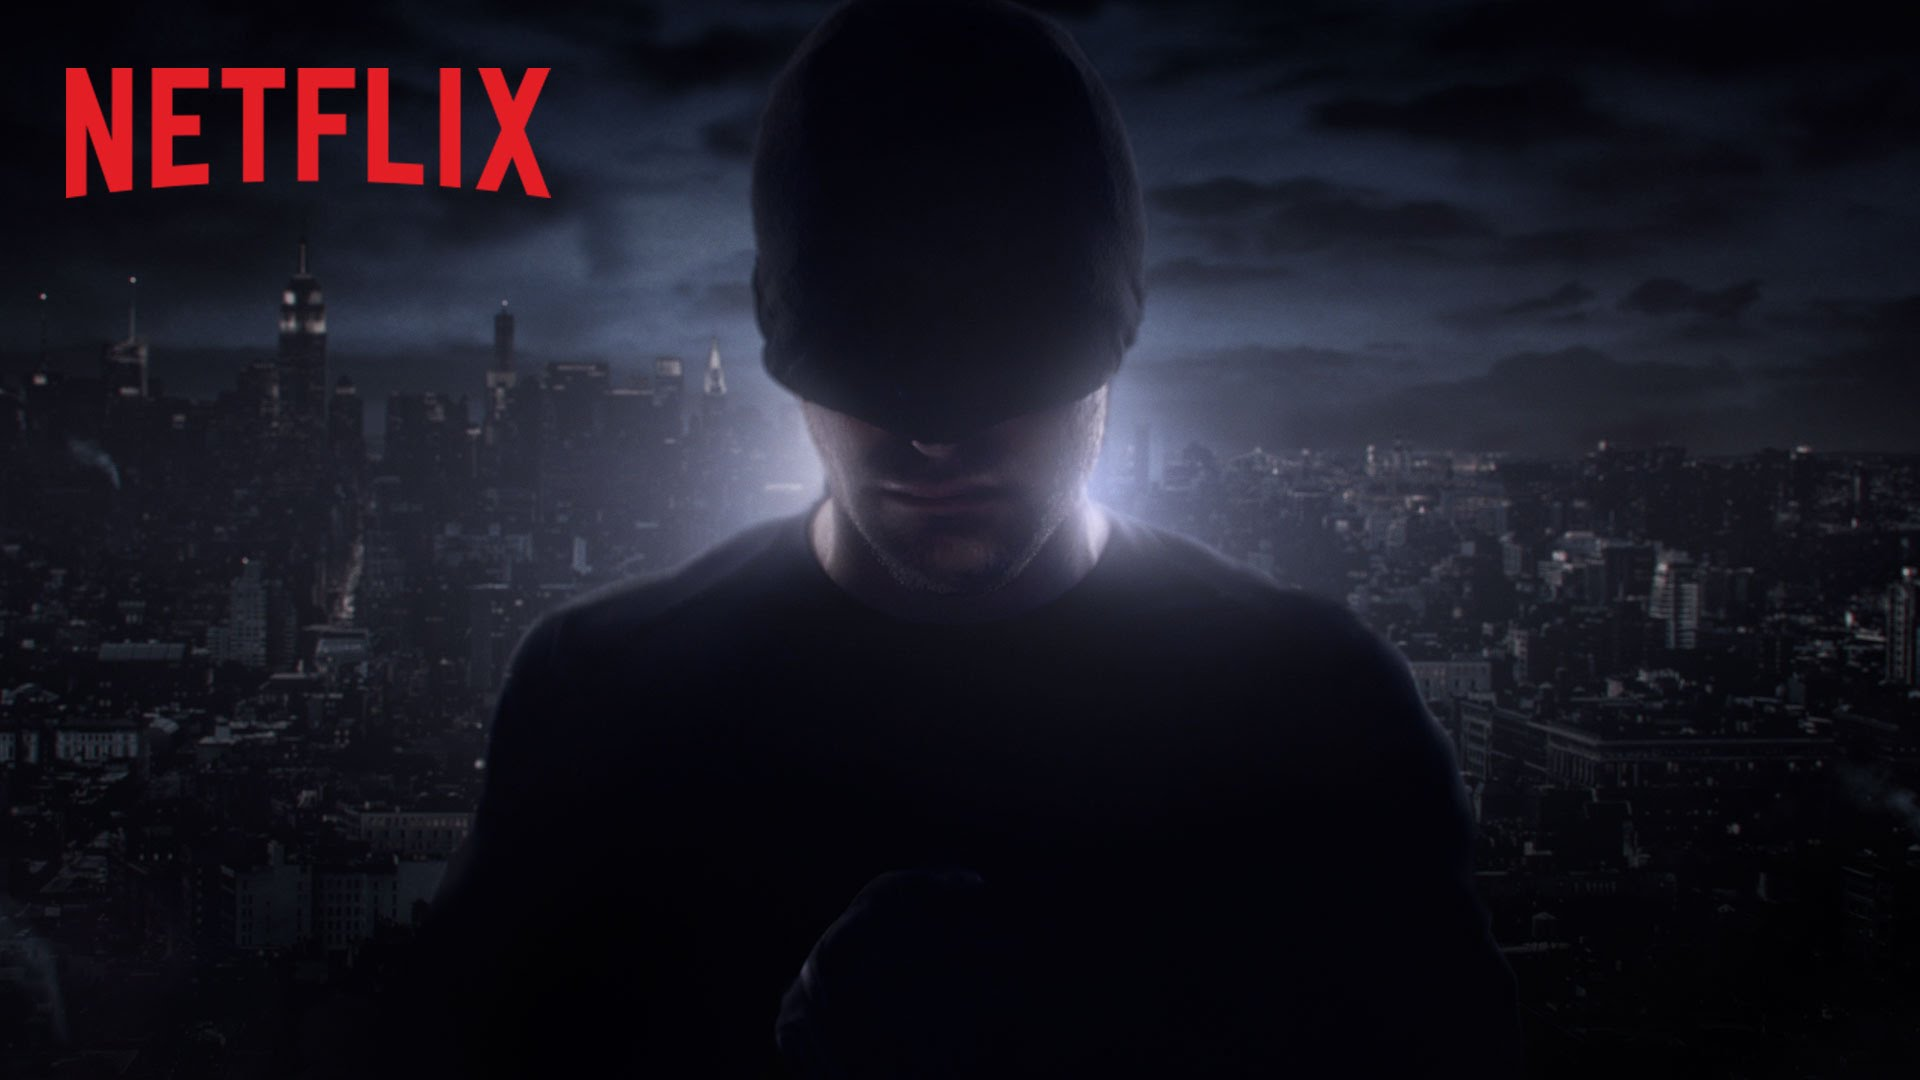 50 Netflix Daredevil Hd Wallpaper On Wallpapersafari